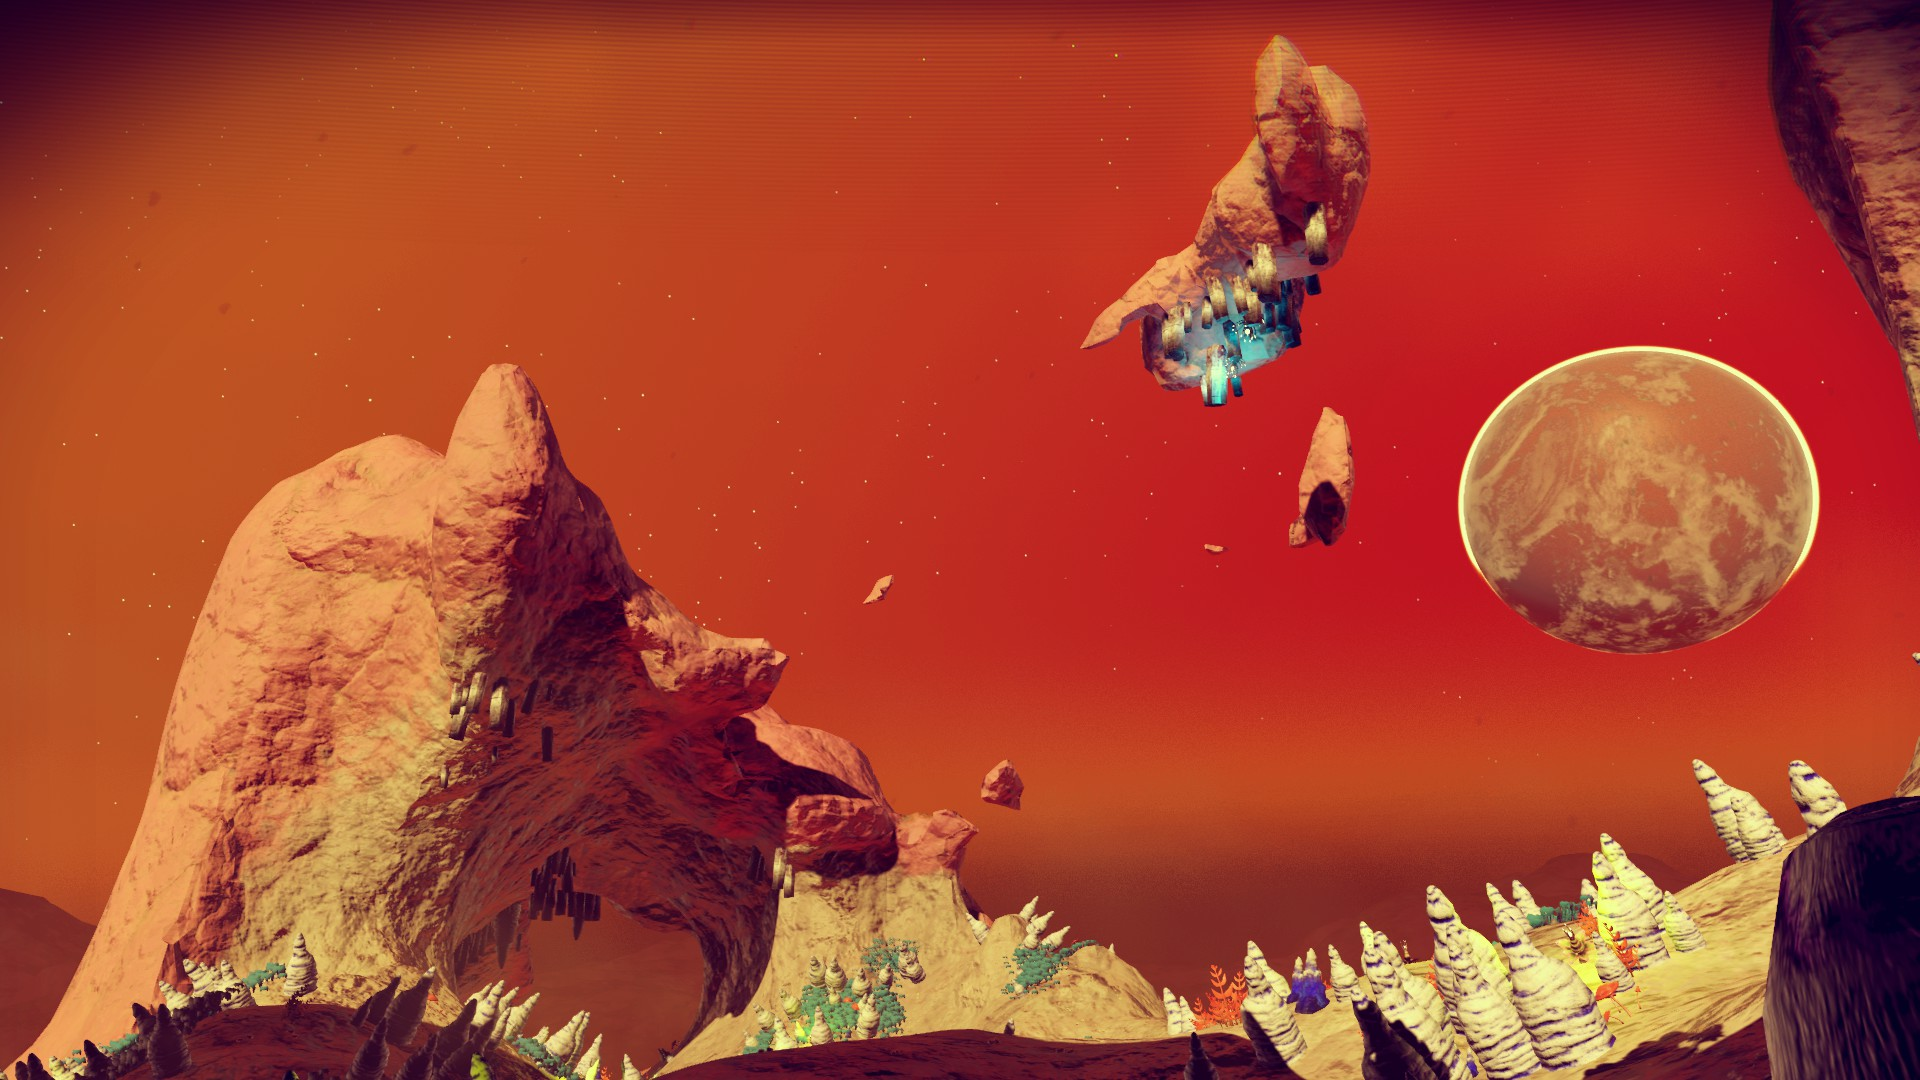 An alien looking landscape from No Man's Sky. A rocky outcrop, a rock floats in an orange and red sky, a planet is visible in the sky.